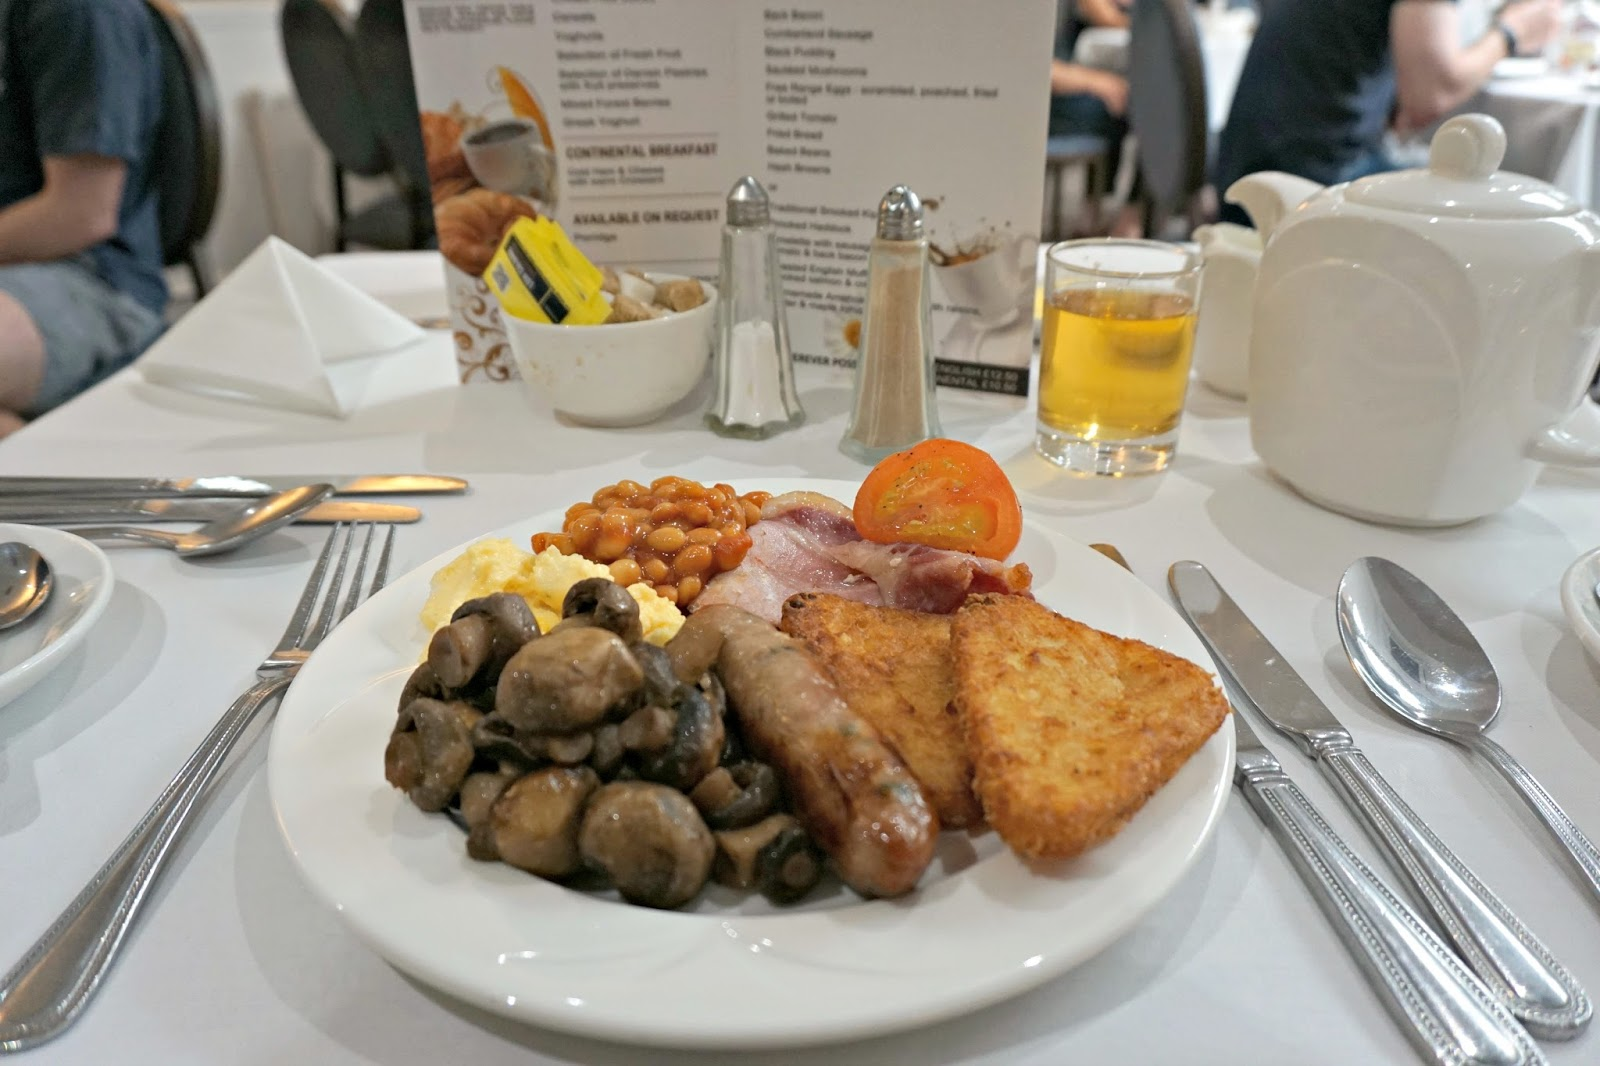 The Milford Hall Hotel Salisbury Wiltshire Stonehenge Amesbury Breakfast Blog Review